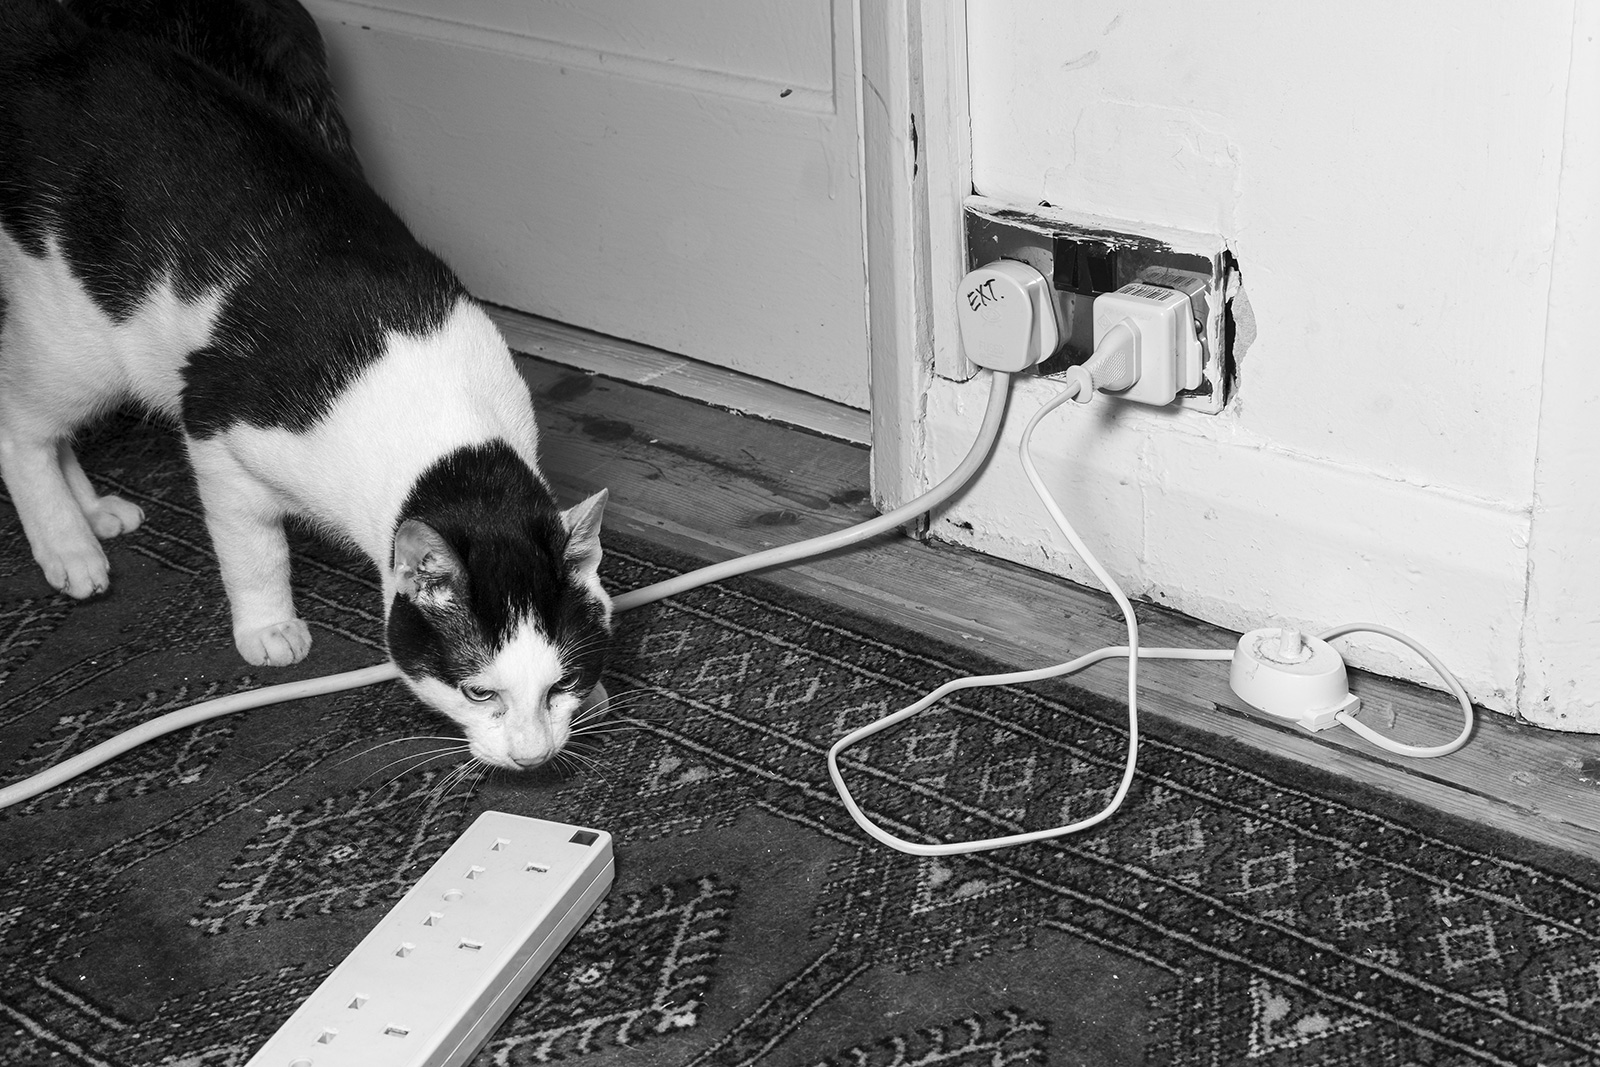 Black and white cat sniffing atmultiplug extension lead on carpeted floor black and white portrait photograph P. Maton 2019 eyeteeth.net